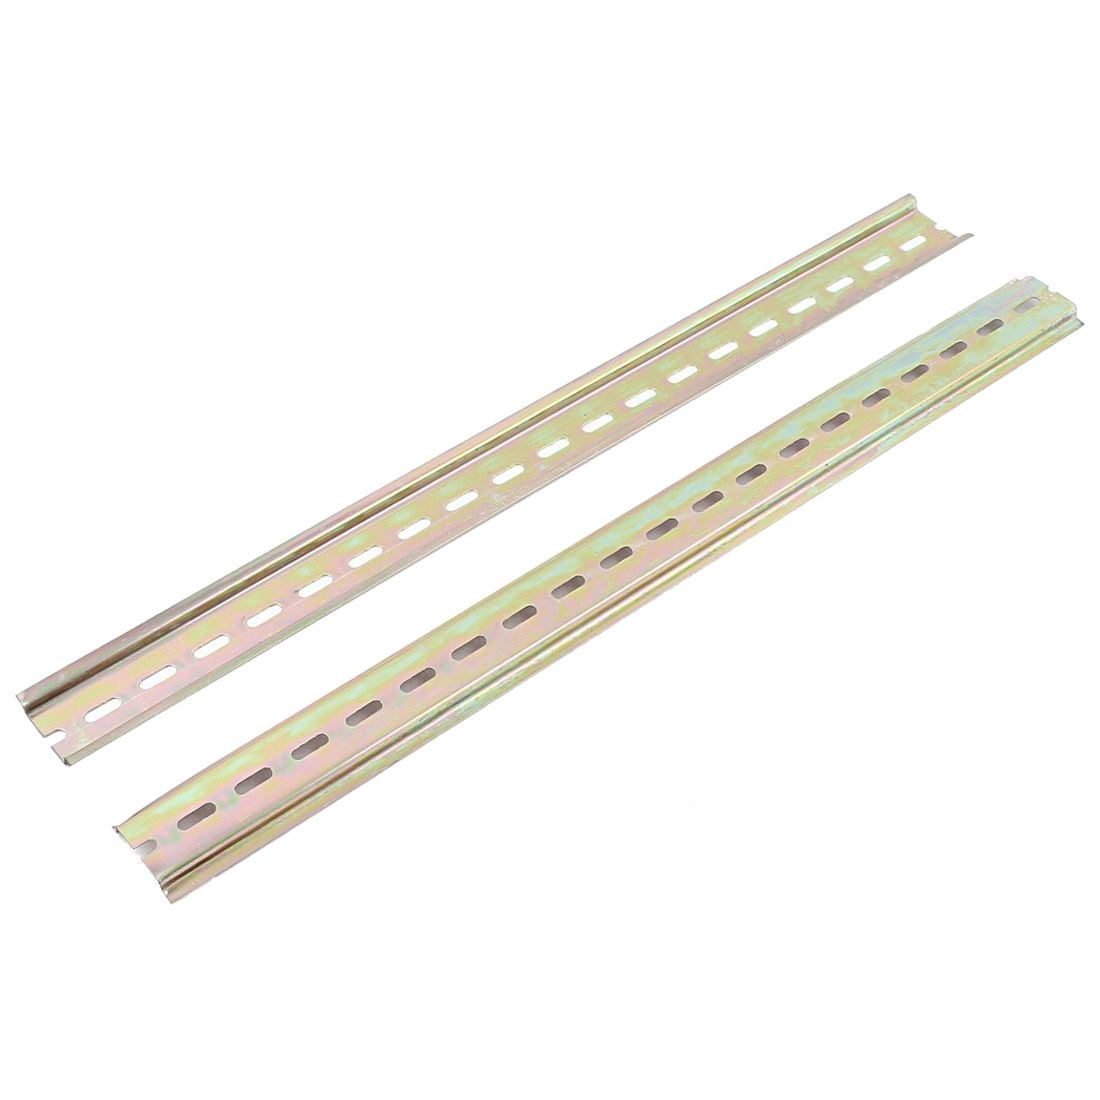 2pcs Slotted Metal 35mm DIN Mounting Rail 40cm Long for AC Contactor